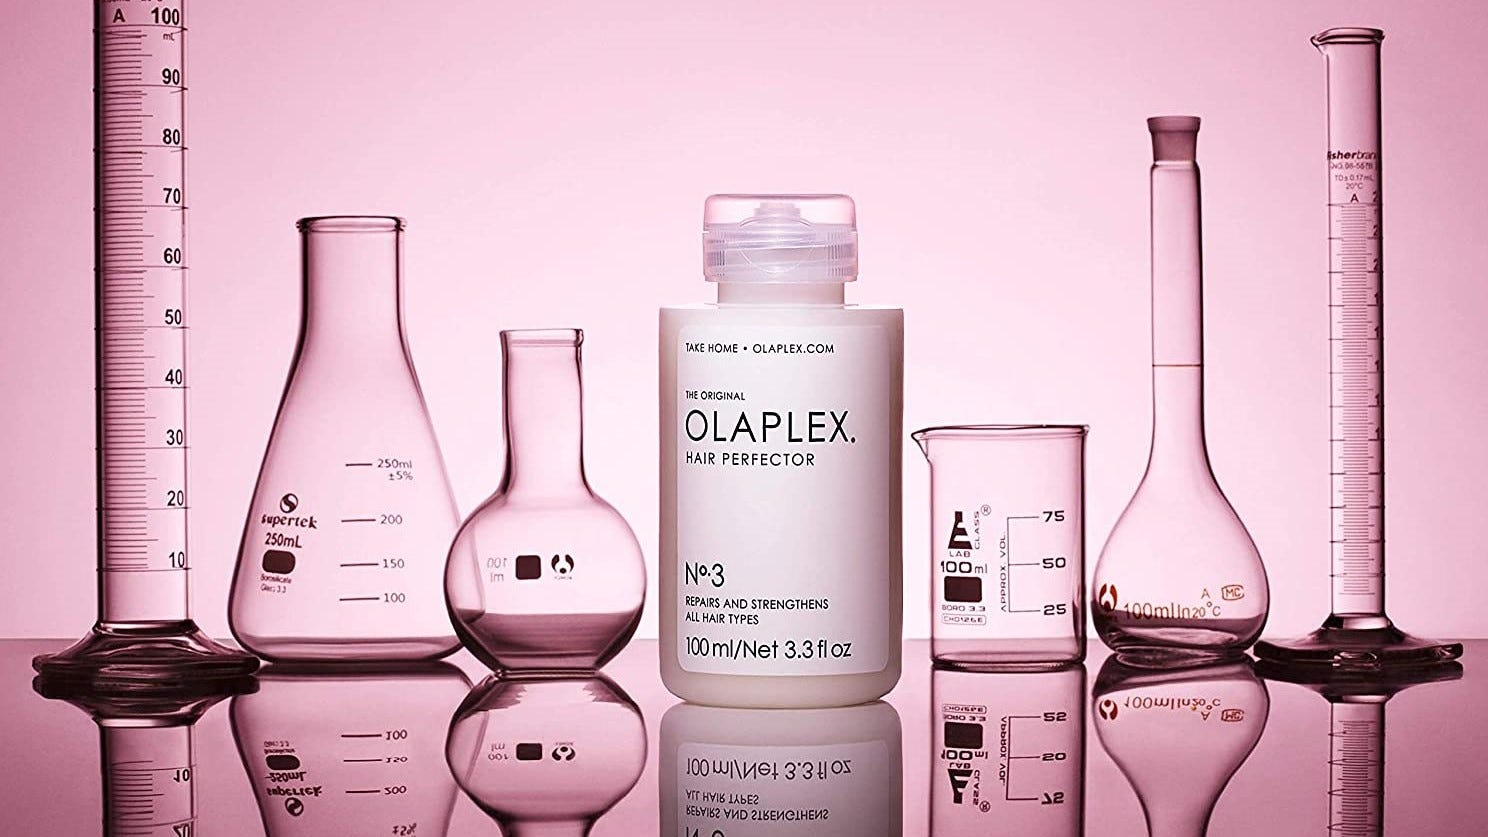 A bottle of Olaplex Hair Perfector No. 3 surrounded by beakers and and measuring tubes.